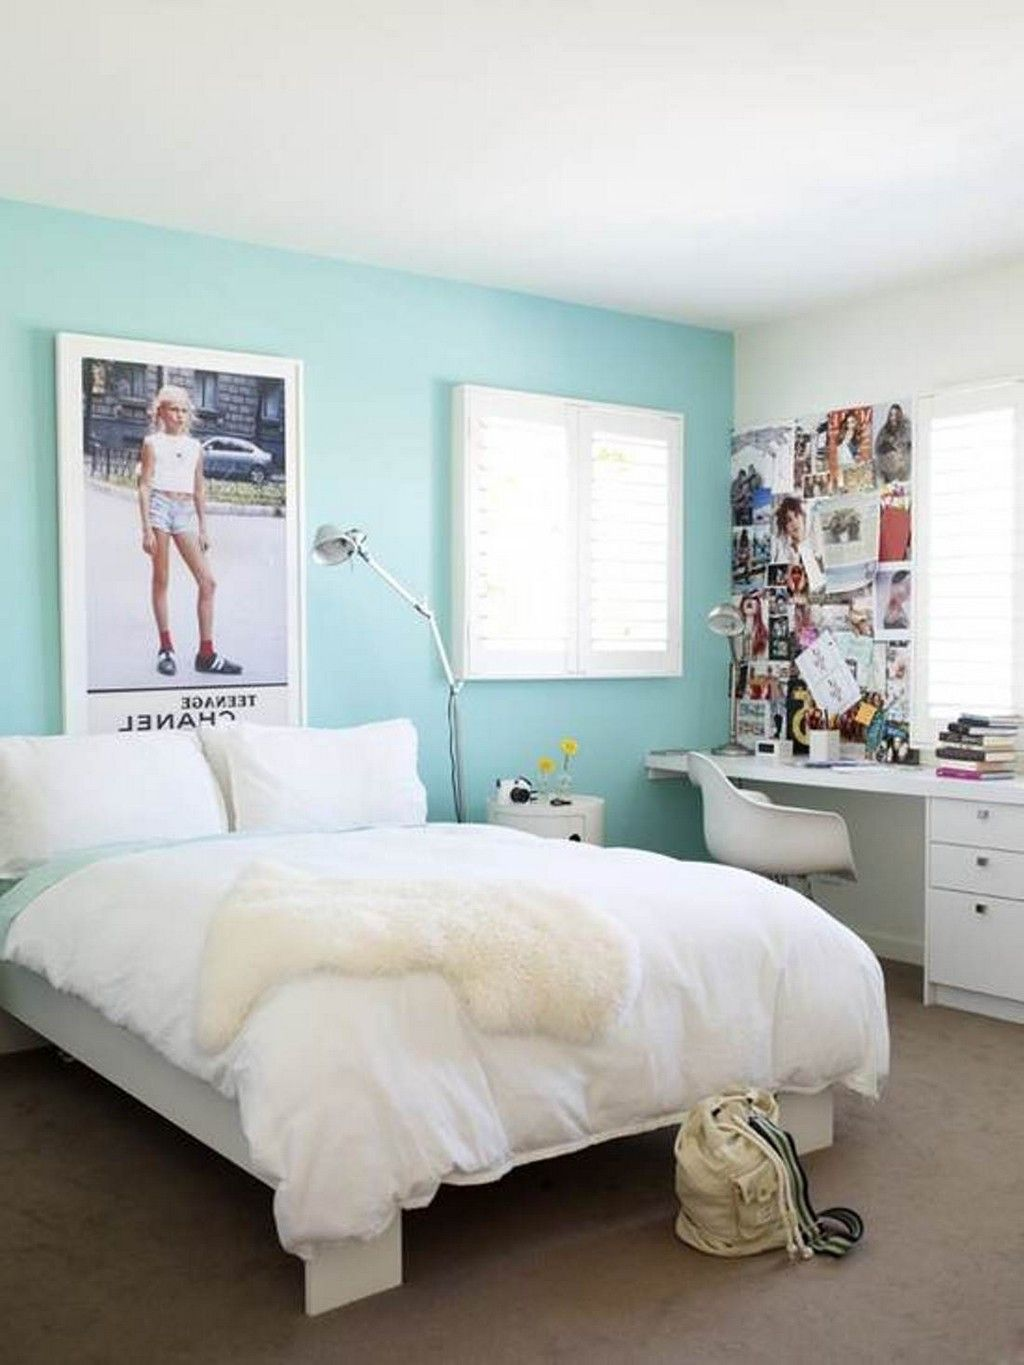 Design Bedroom Ideas For Teens bedroom calming blue paint colors for small teen ideas ideas